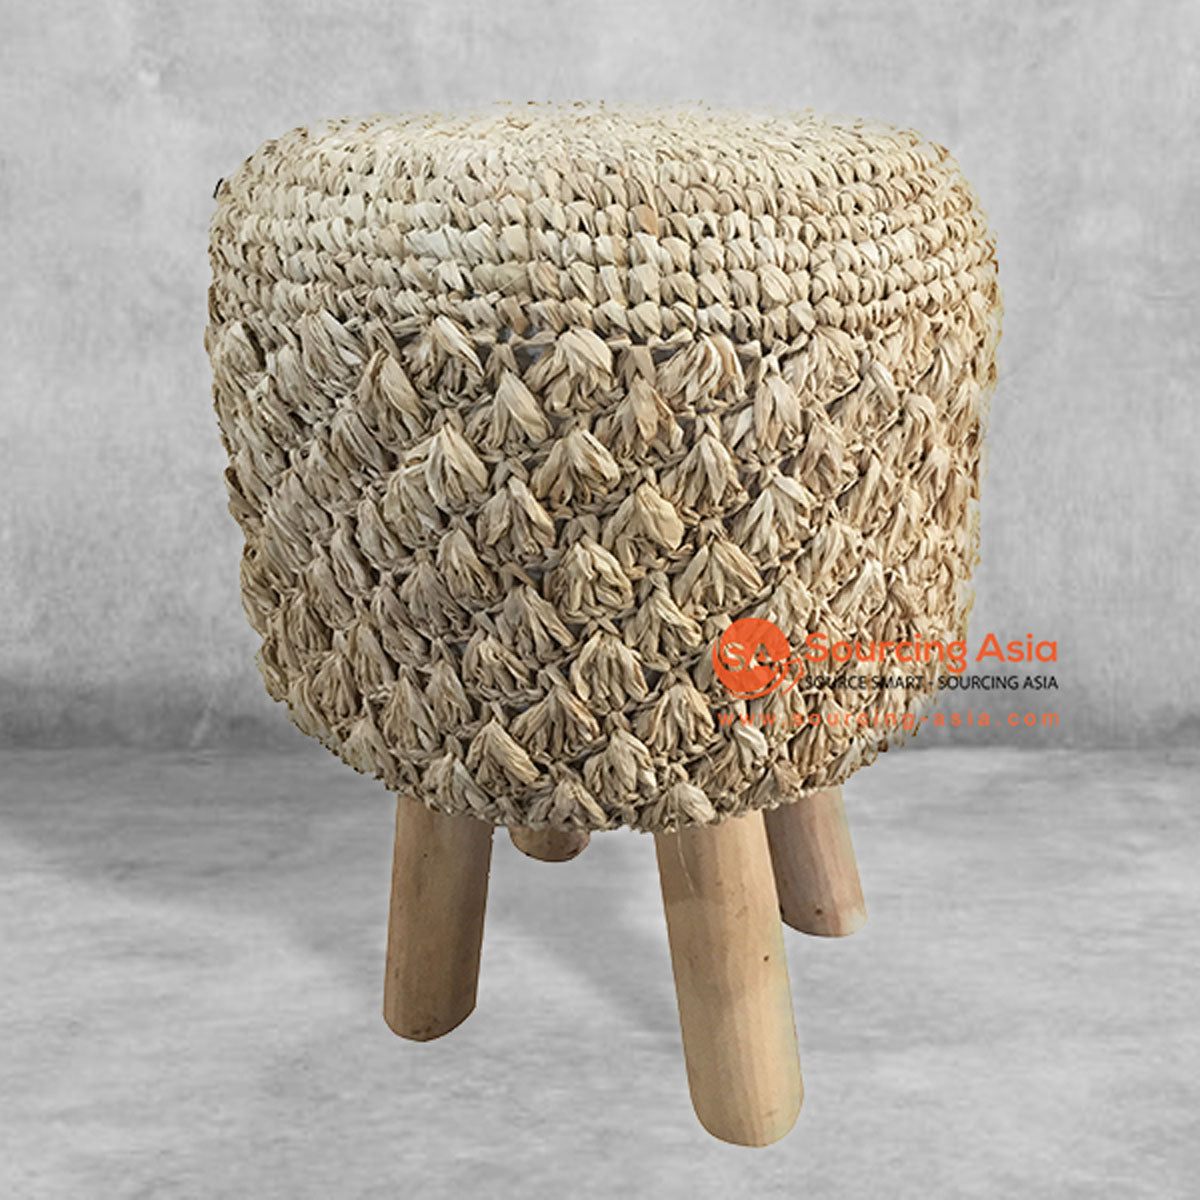 SHL141 NATURAL RAFFIA ROUND STOOL